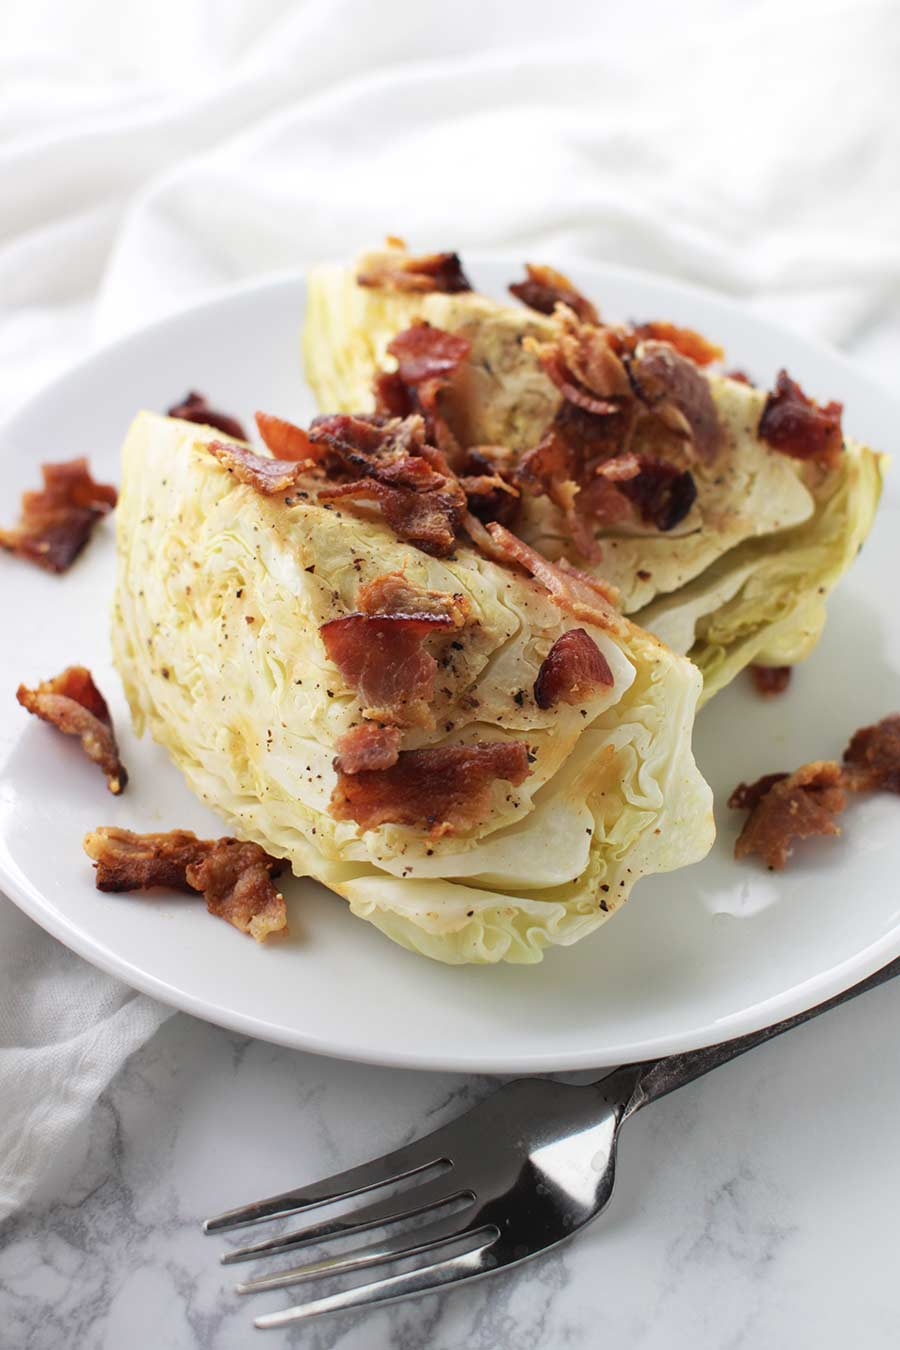 Garlic-Bacon Cabbage recipe from acleanplate.com #aip #autoimmuneprotocol #paleo